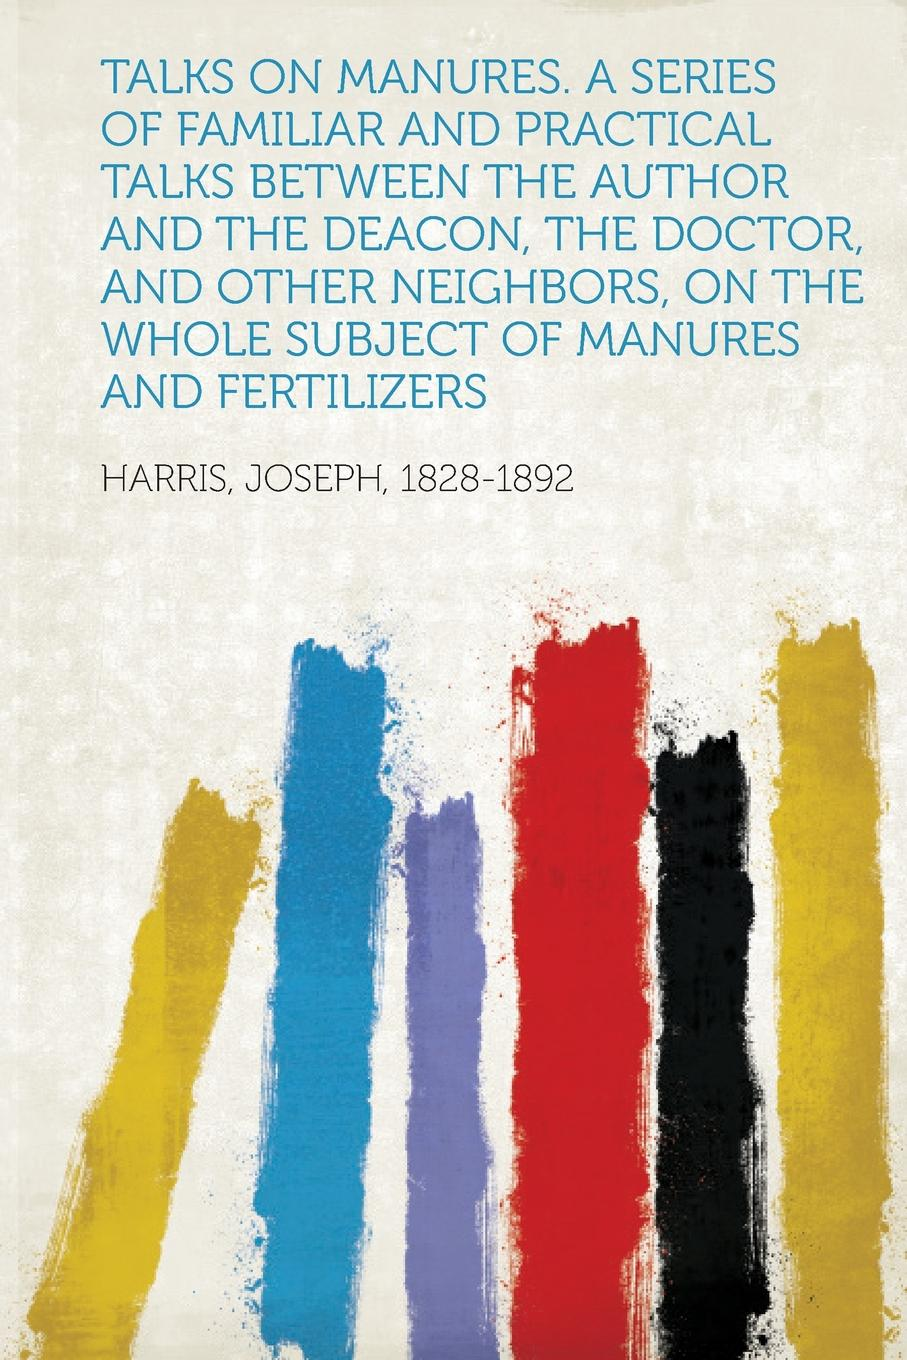 Talks on Manures. A Series of Familiar and Practical Talks Between the Author and the Deacon, the Doctor, and Other Neighbors, on the Whole Subject of Manures and Fertilizers